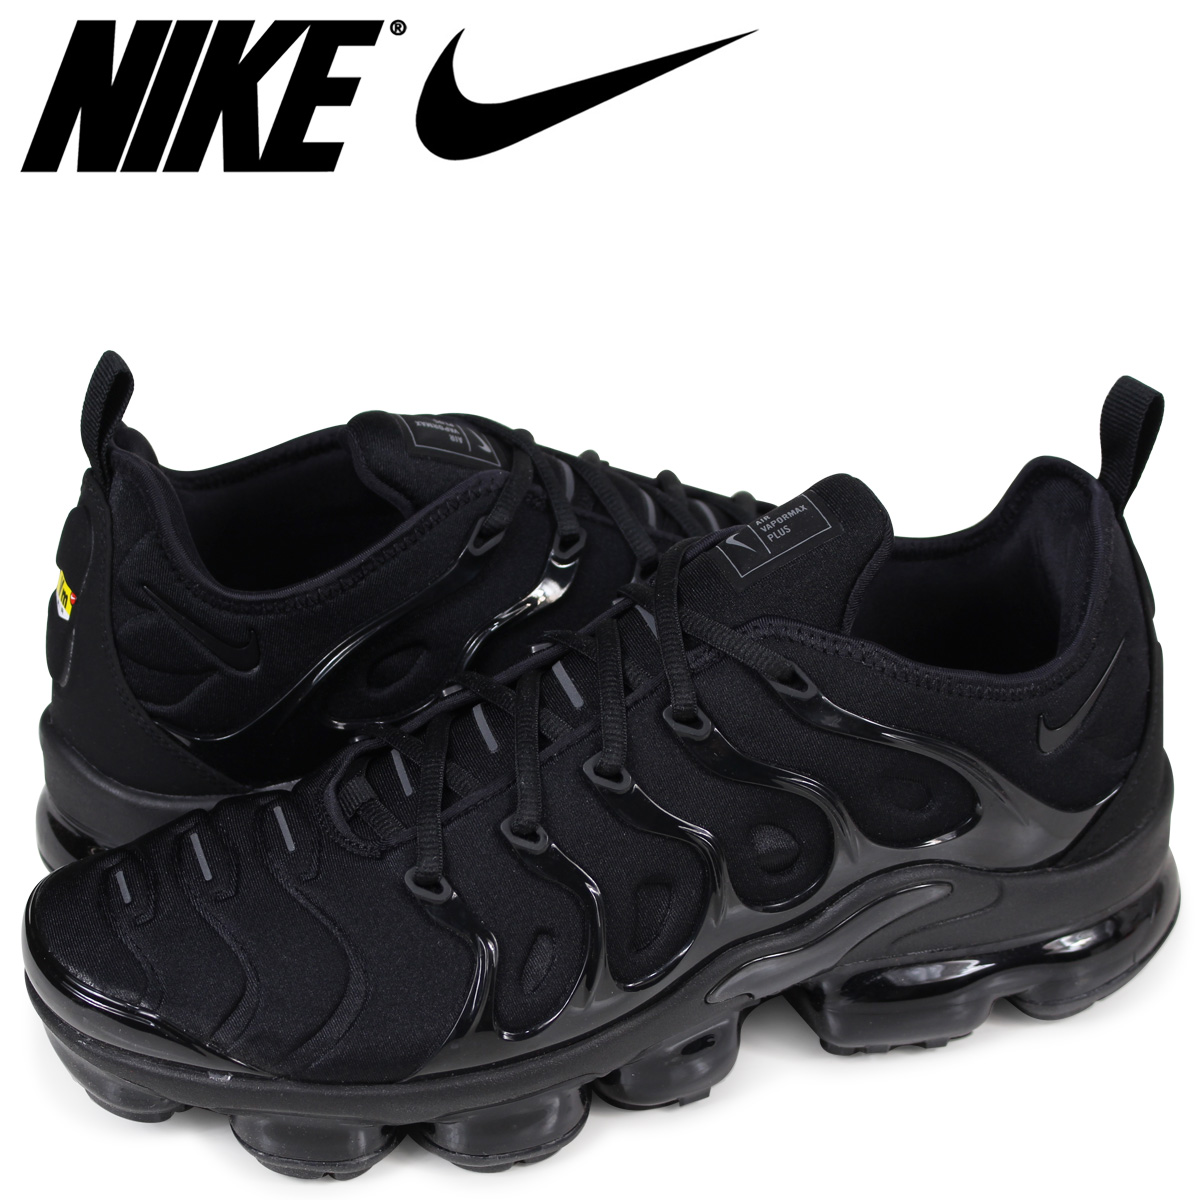 81c7d10d1bc NIKE AIR VAPORMAX PLUS Nike air vapor max plus sneakers men black  924